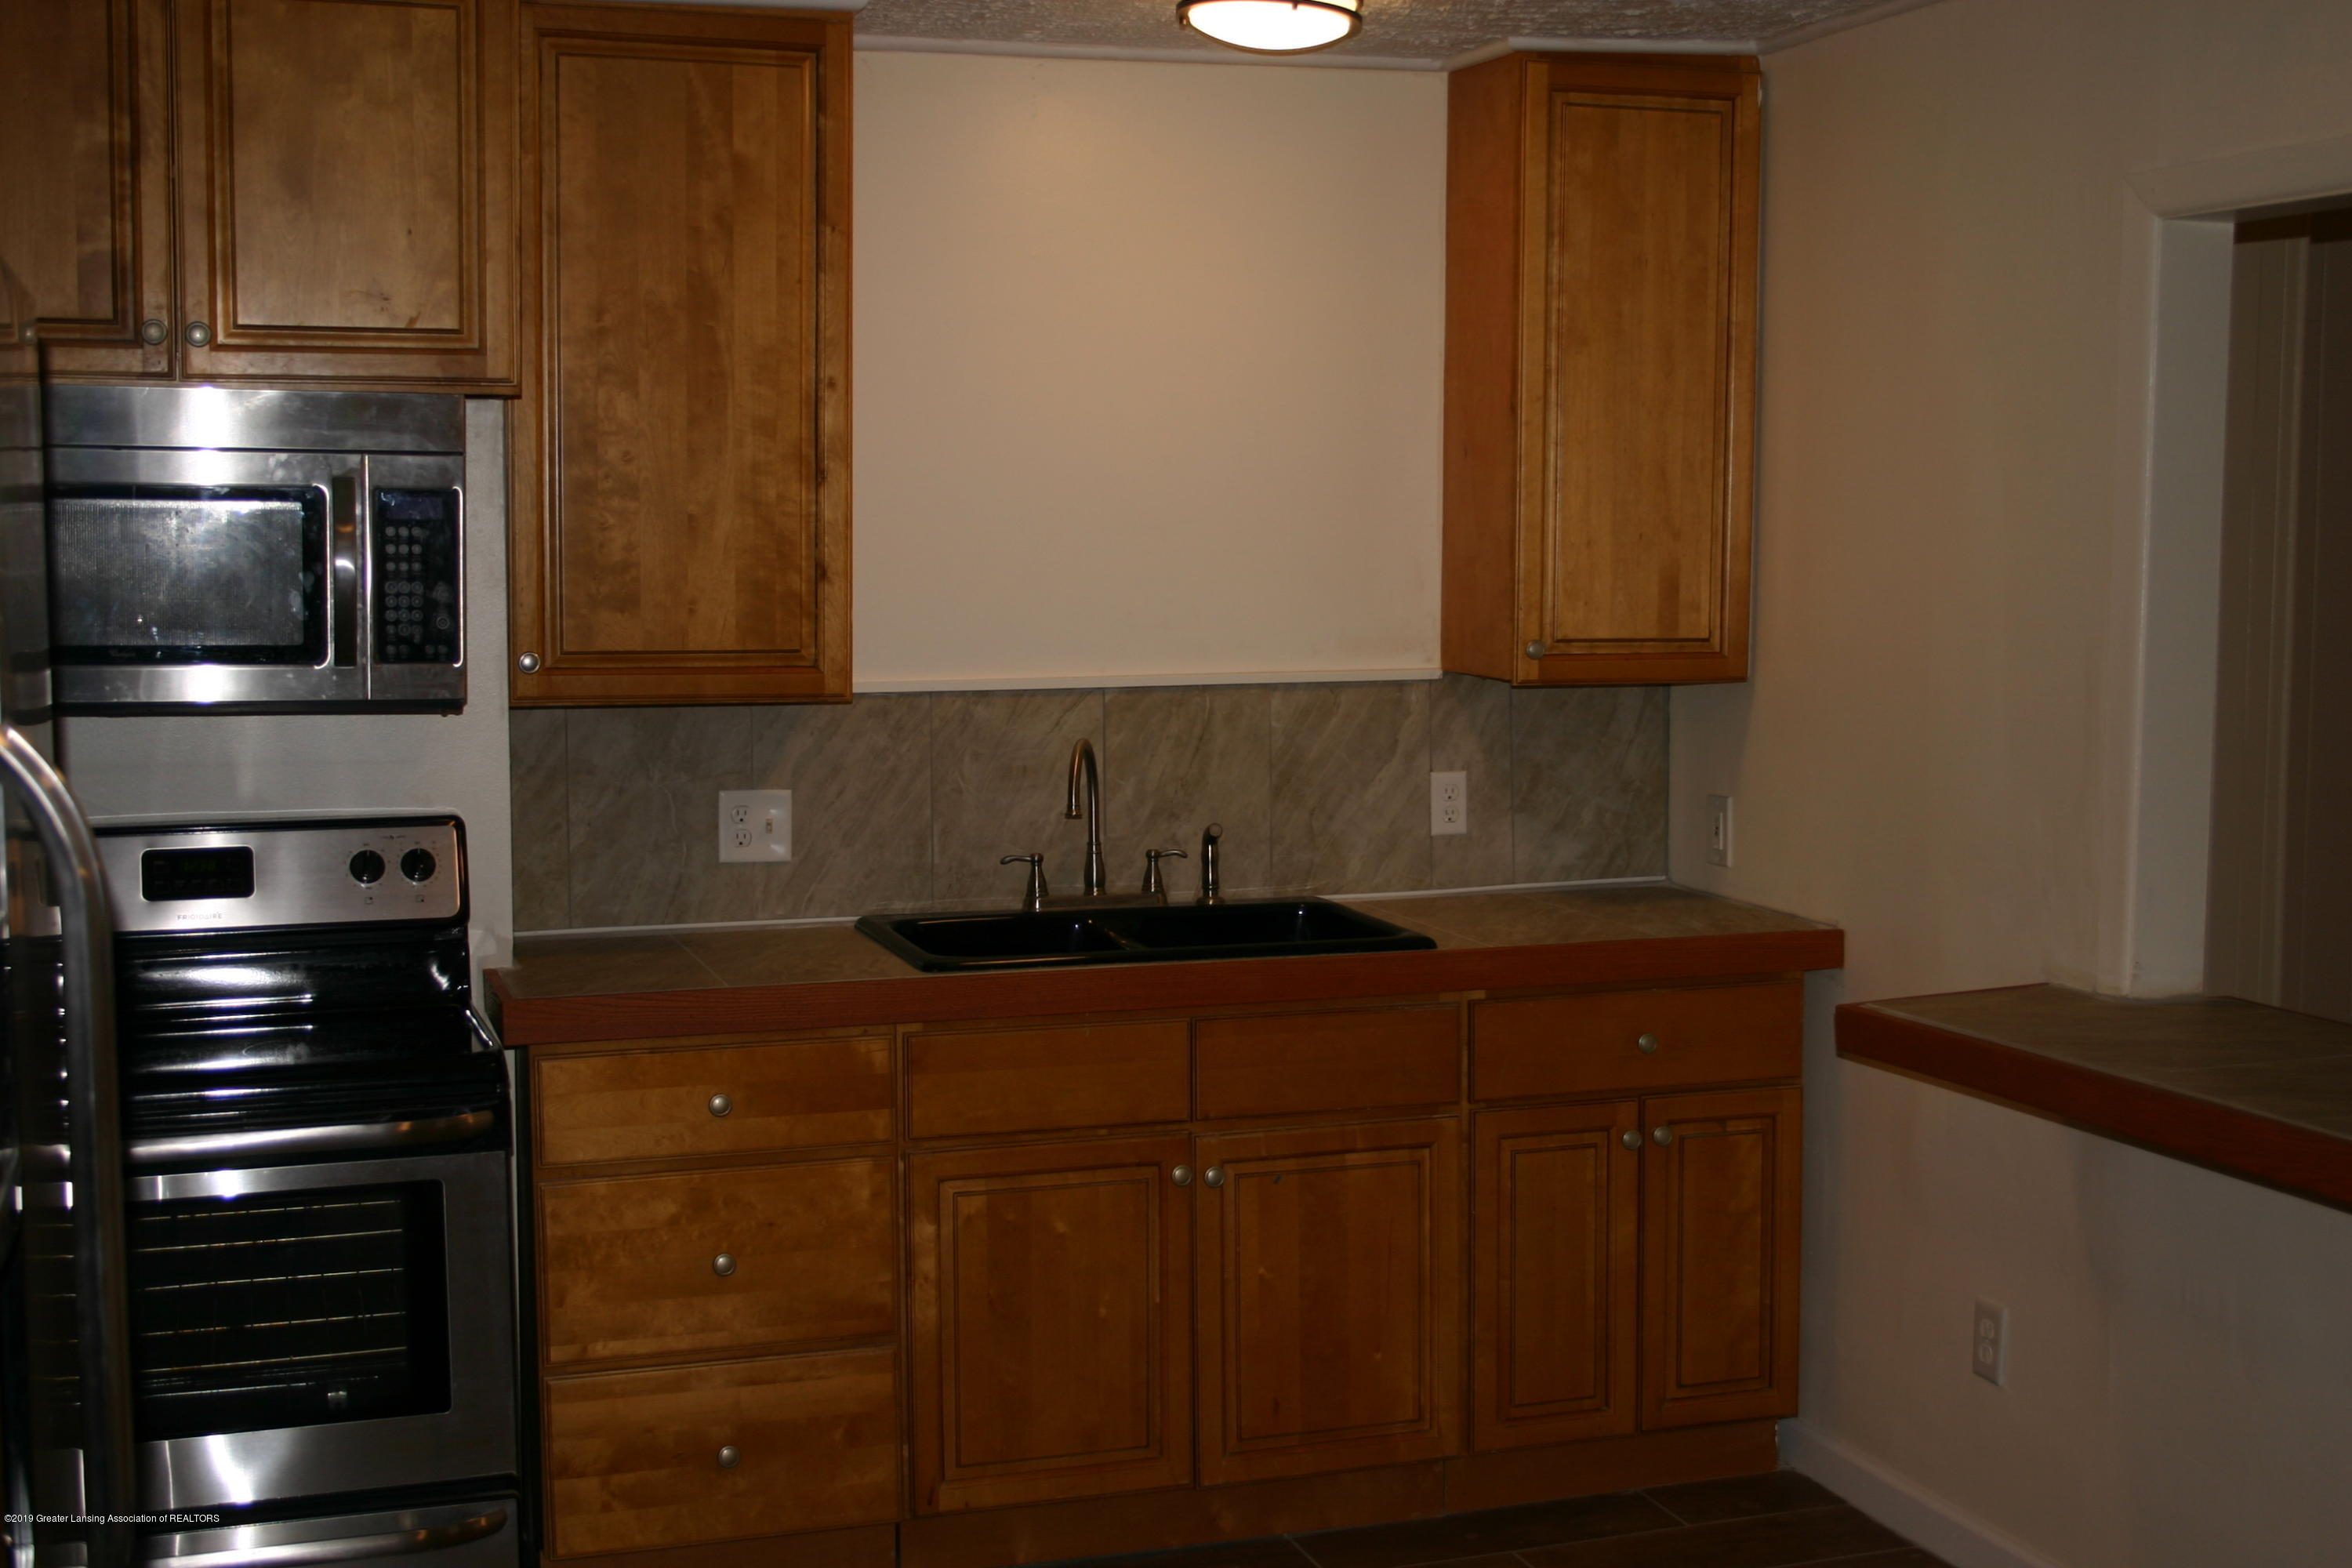 2120 W Miller Rd - Kitchen - 5